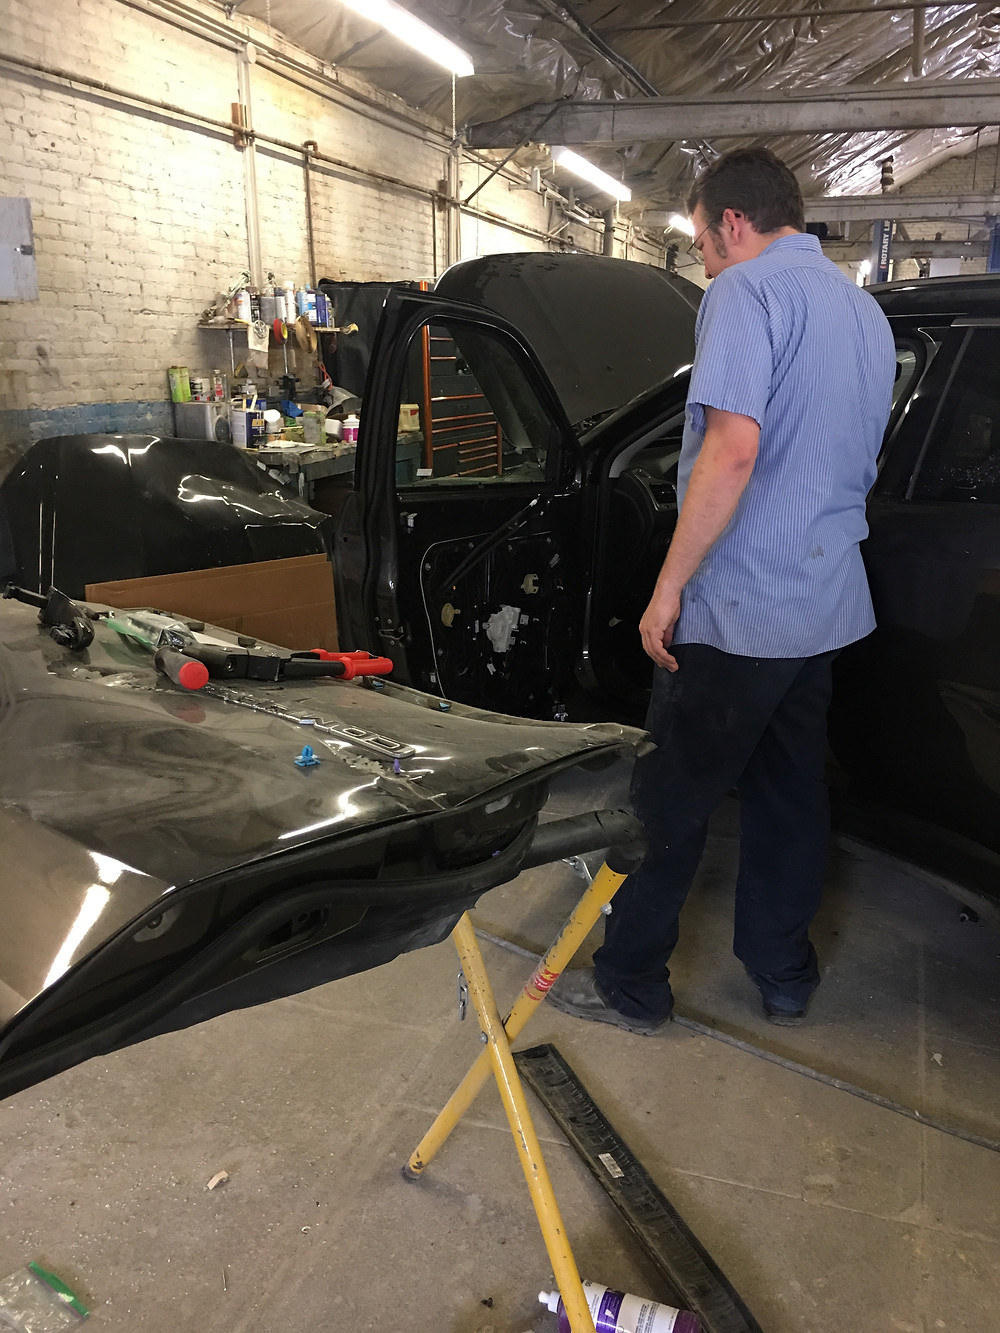 Vehicle doors removed for replacement. Technician is completing the repairs